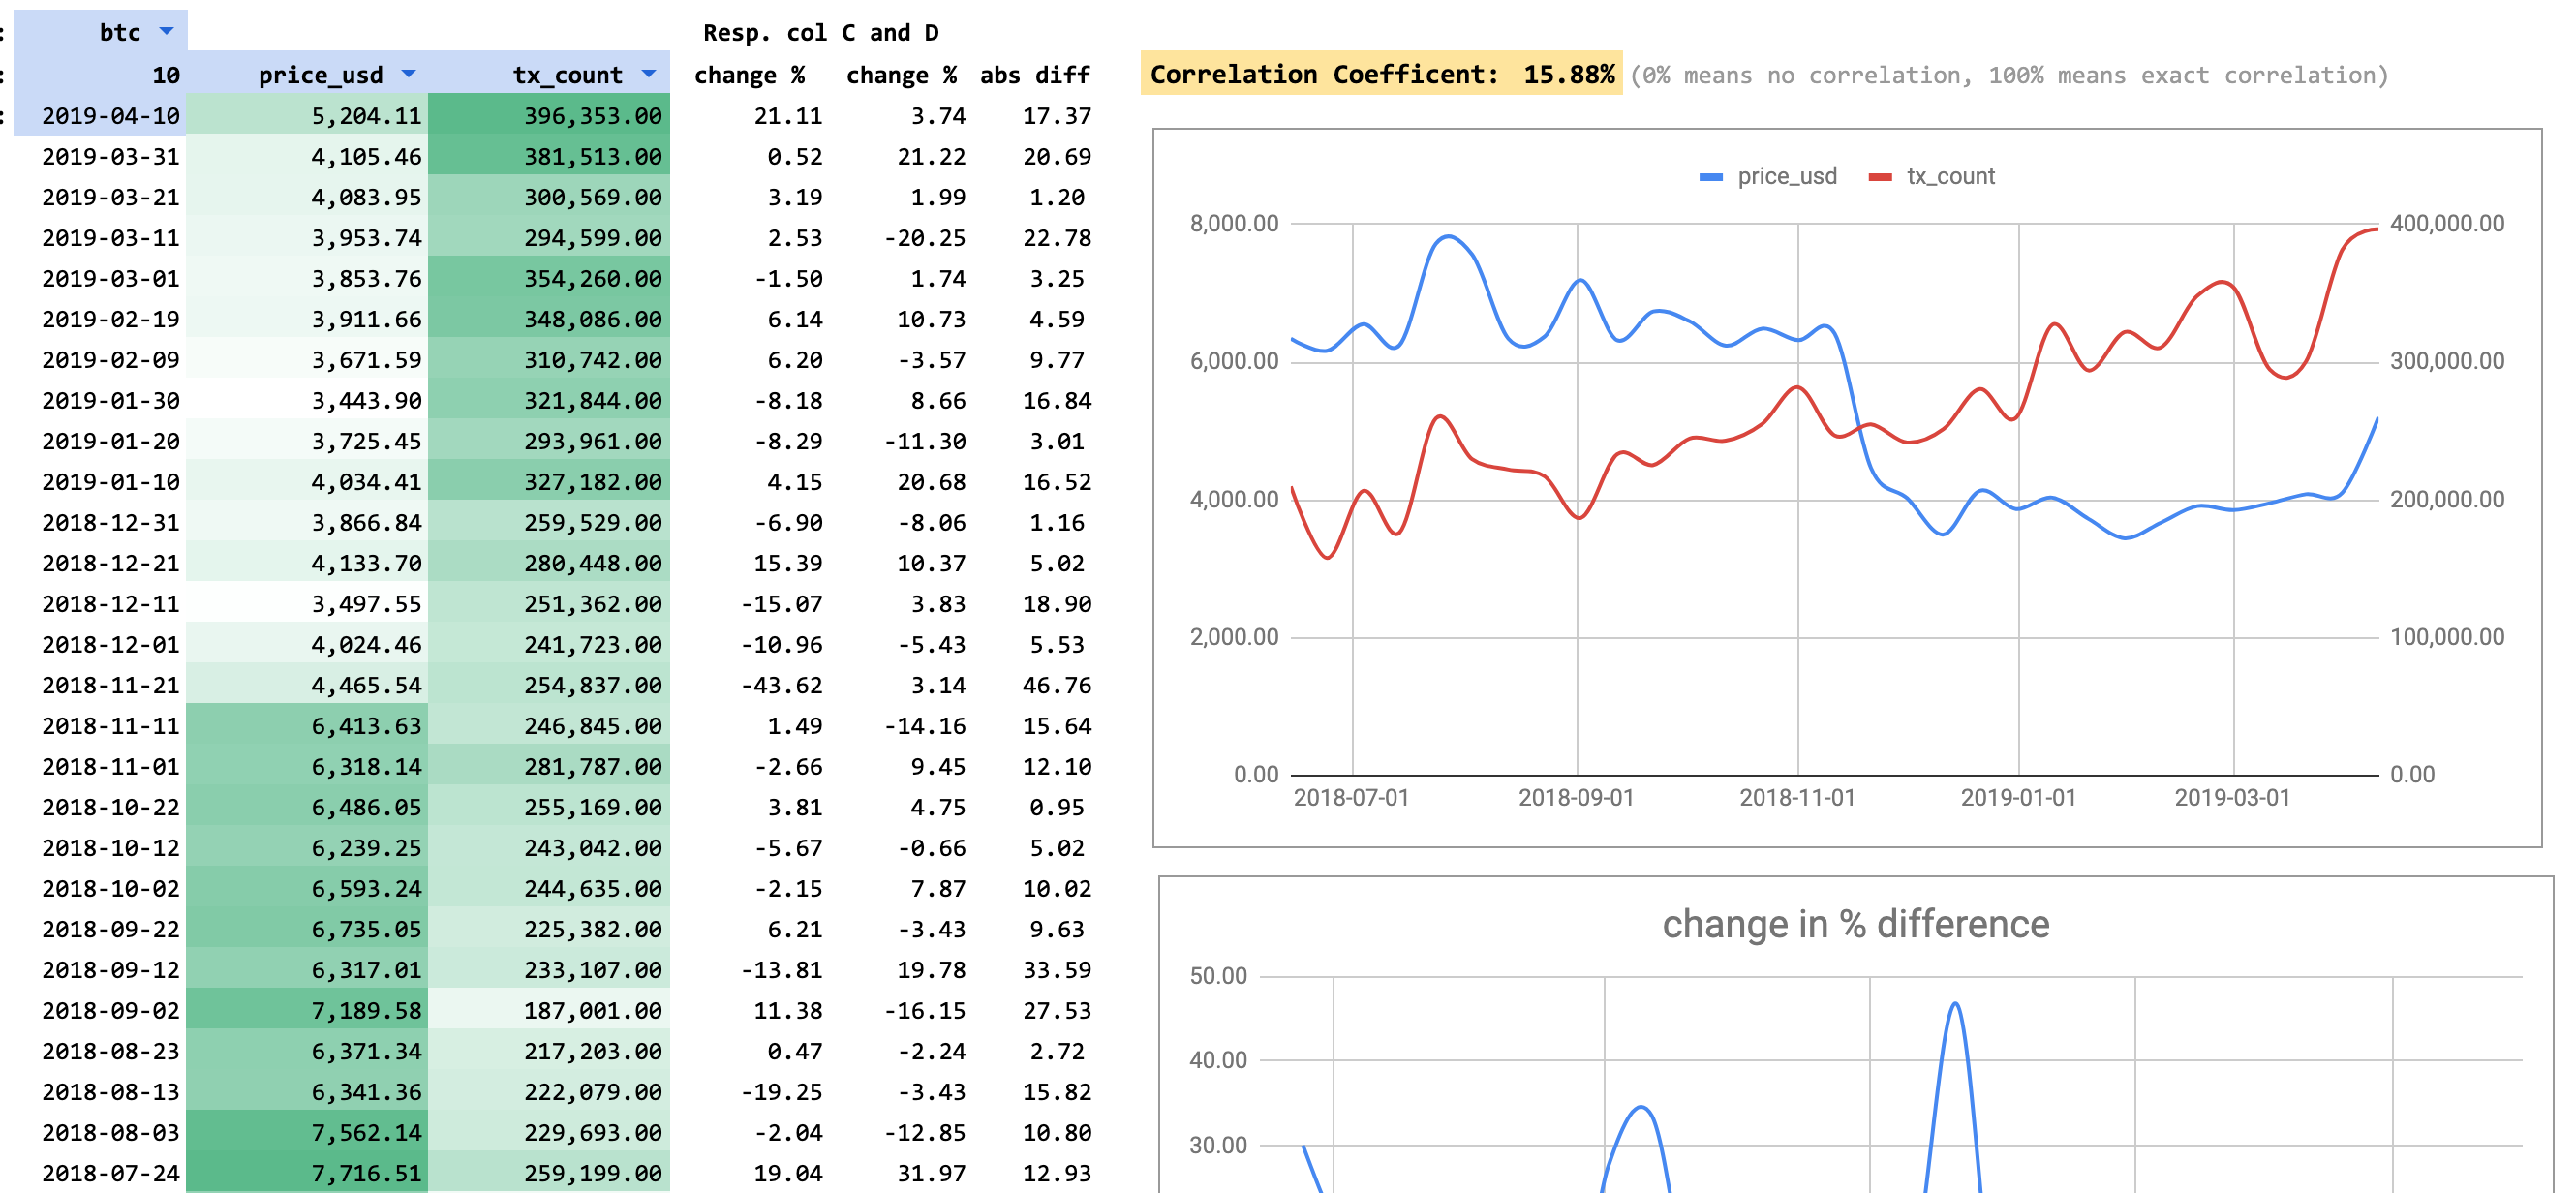 Bitcoin Price to Transaction Count Correlation